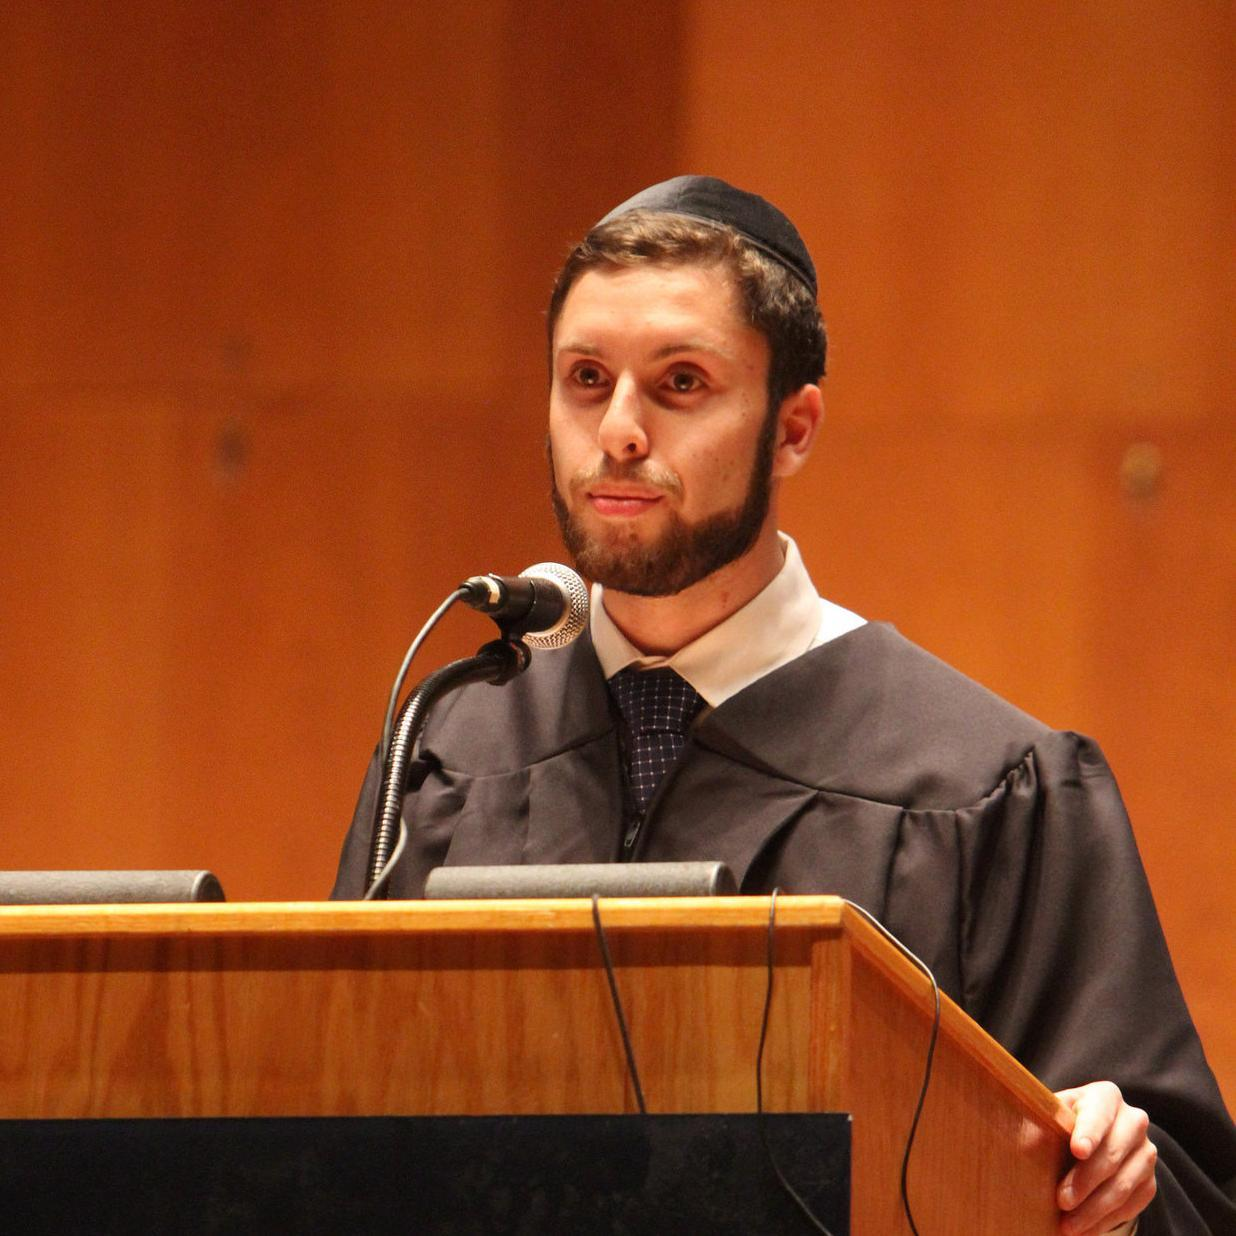 Simcha Himmel, LCM Valedictorian, Class of 2015